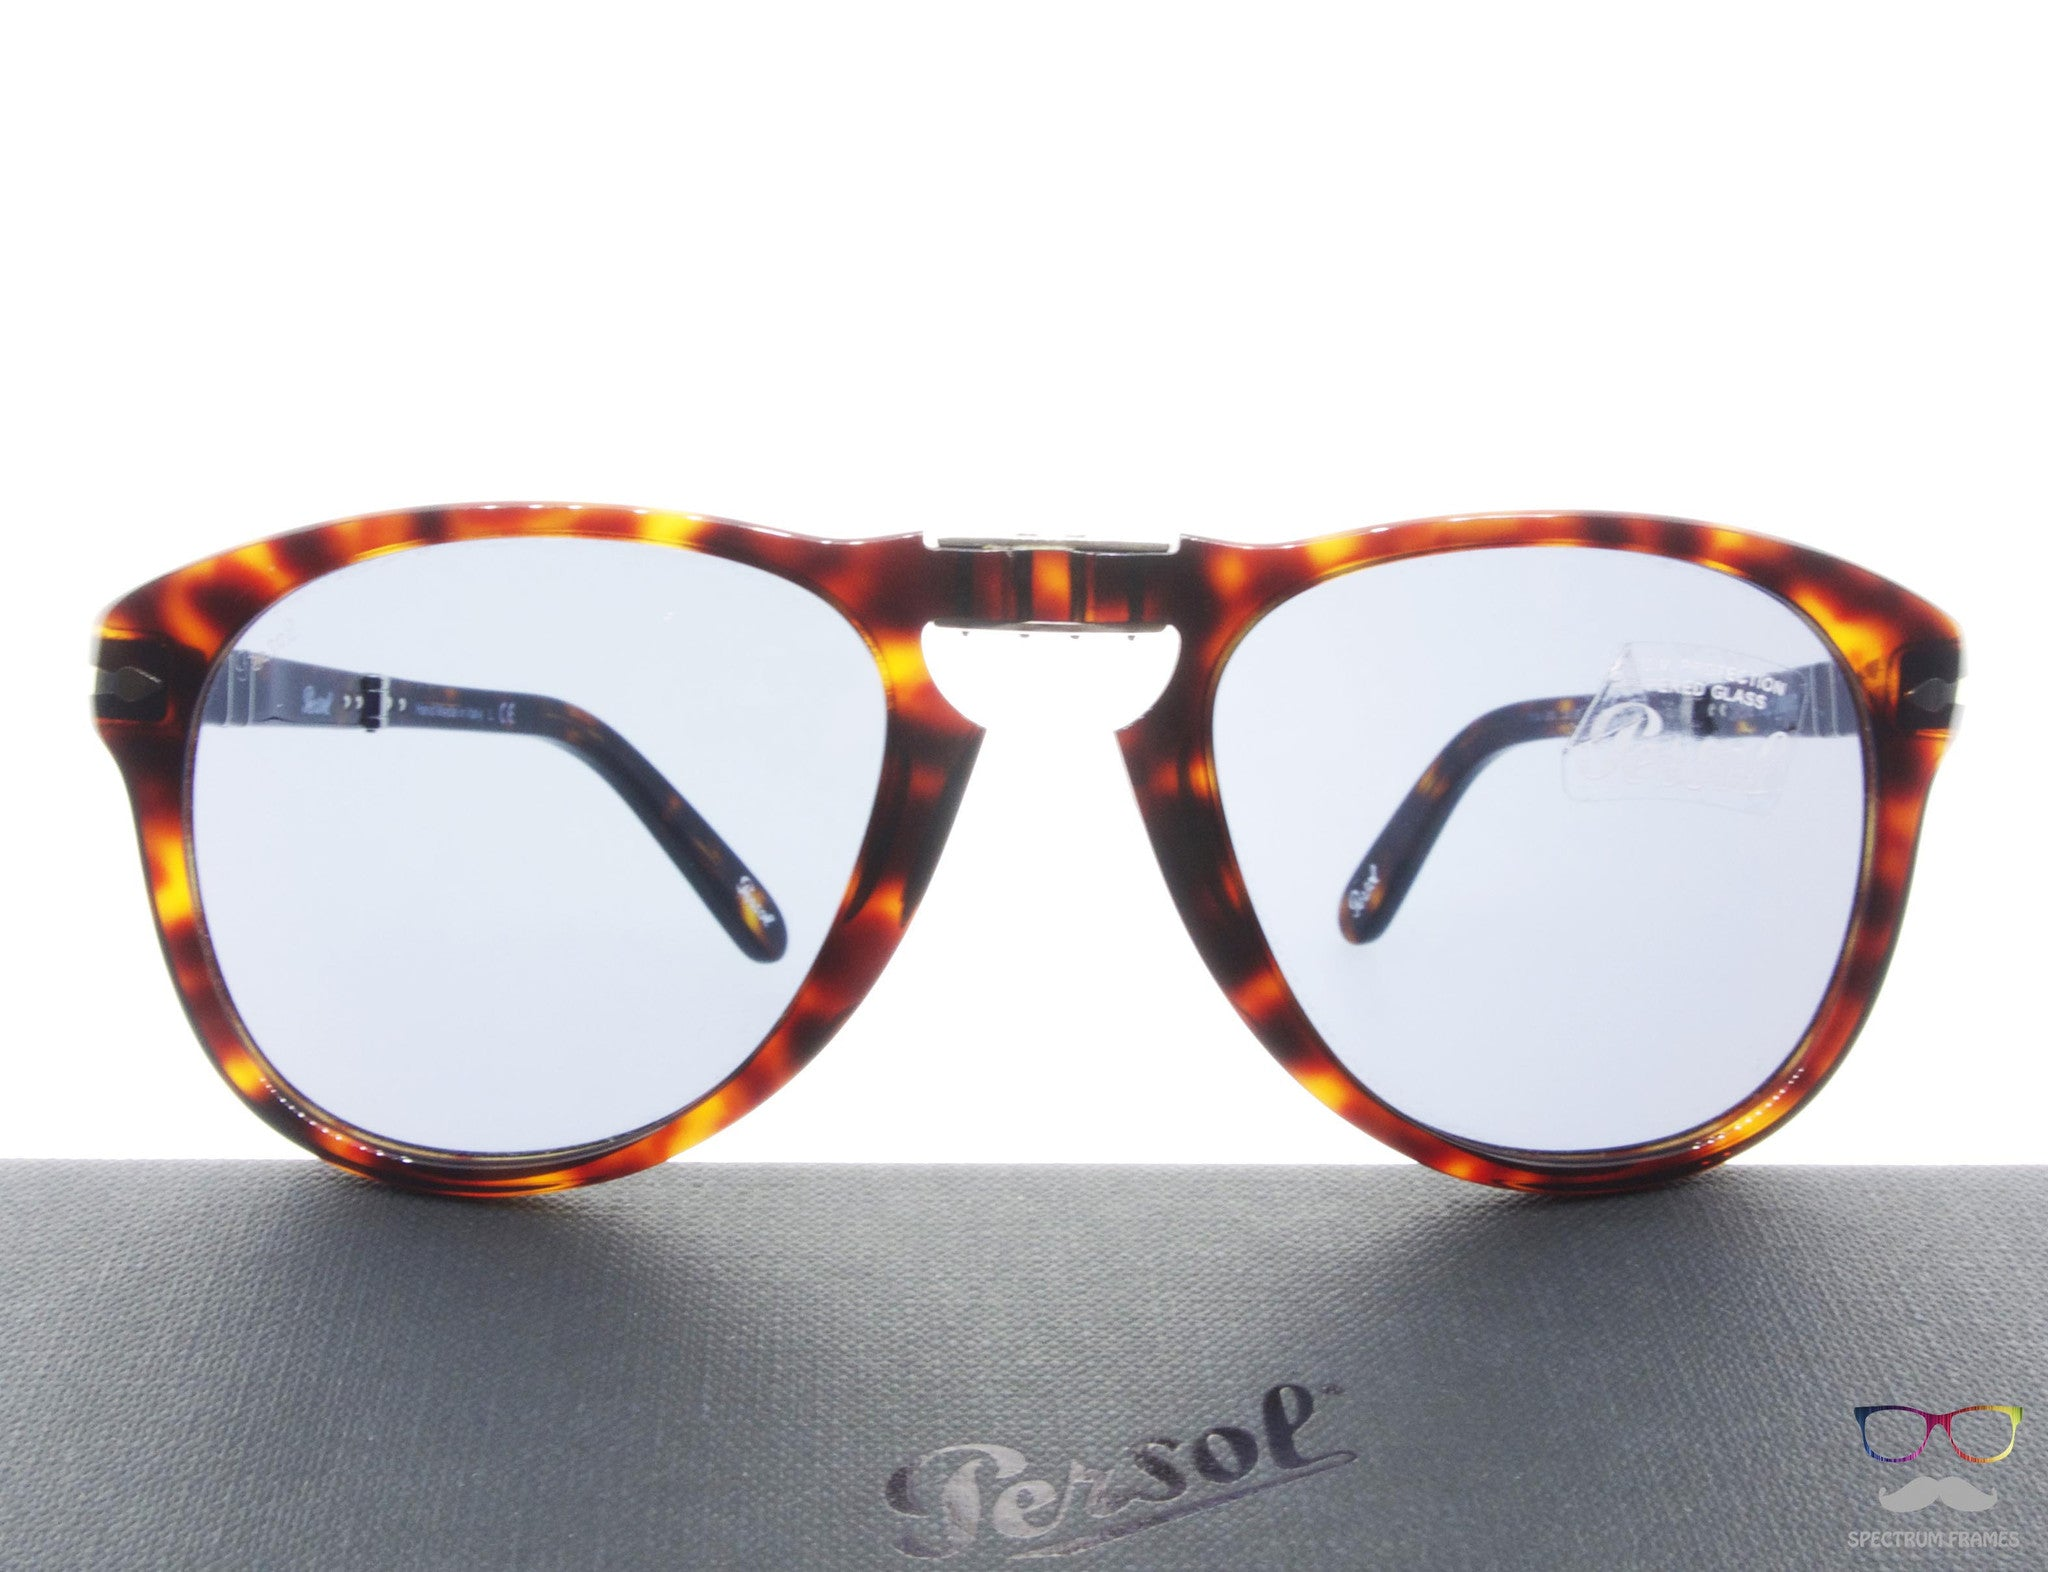 3ad93aafac Persol Folding Sunglasses 714SM 24 56 Havana with Blue Mirrored Lens Size  52 Steve McQueen